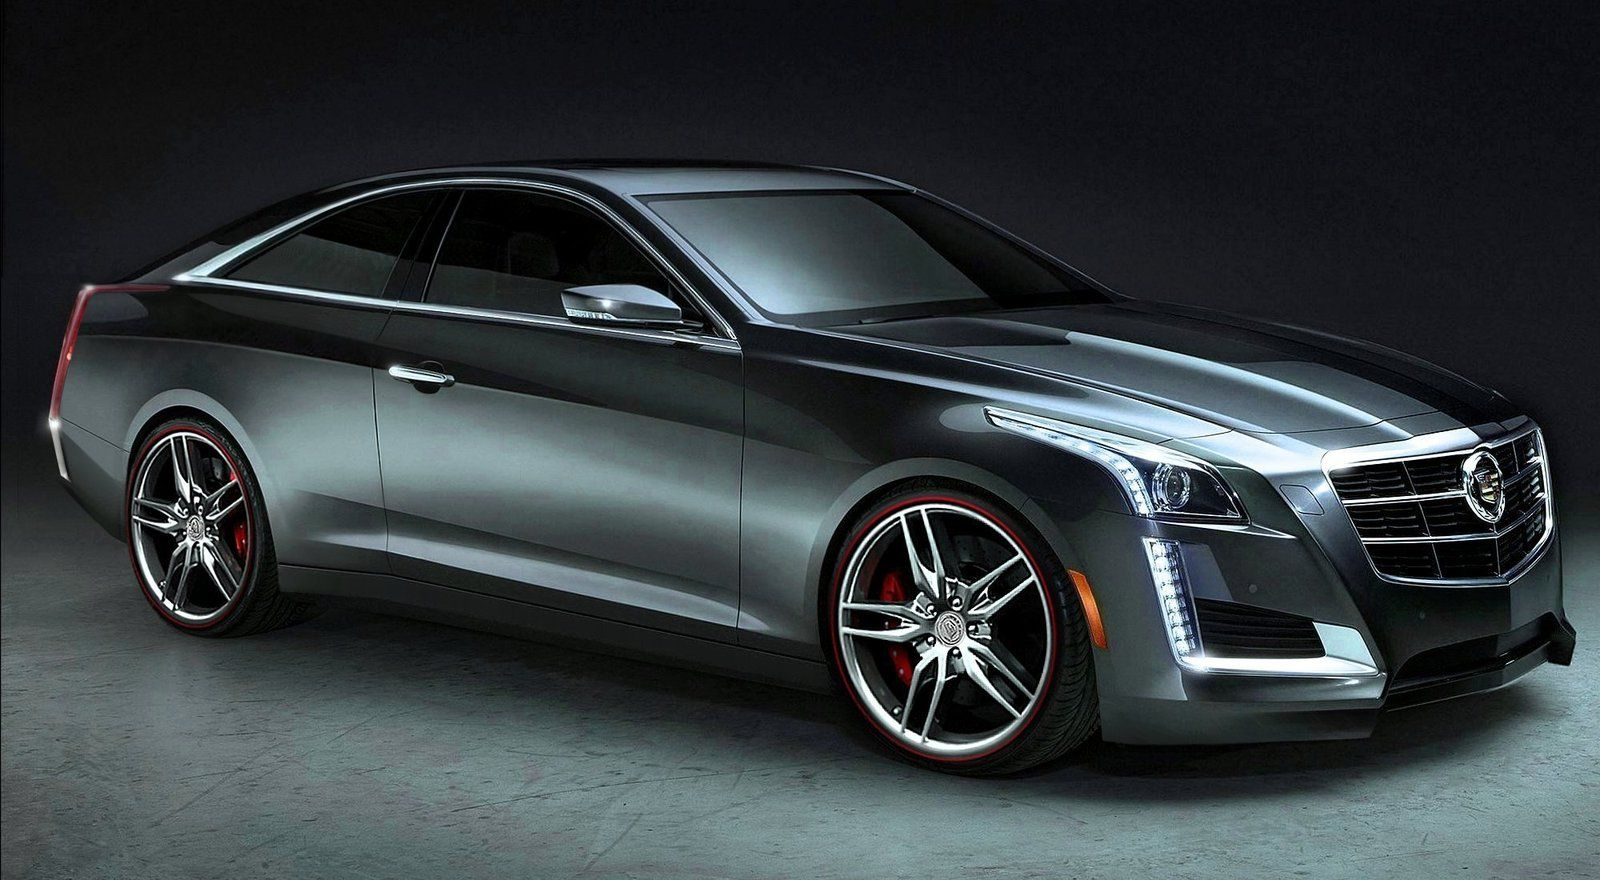 2015 Cadillac Cts Coupe I Would Drive This Car Because I Might Use